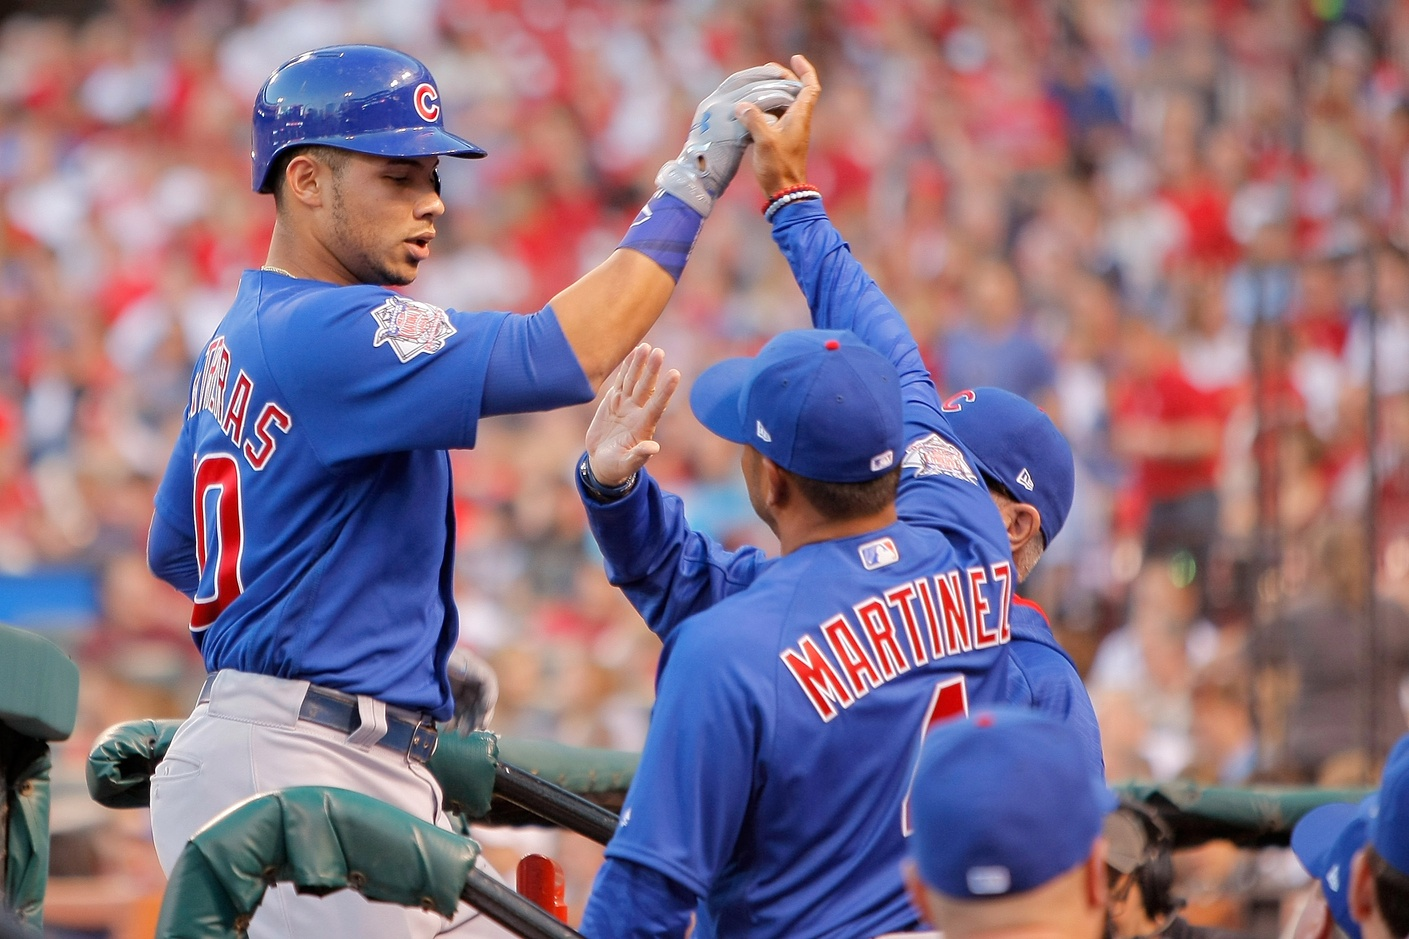 Cubs rout Cardinals; magic number now 1